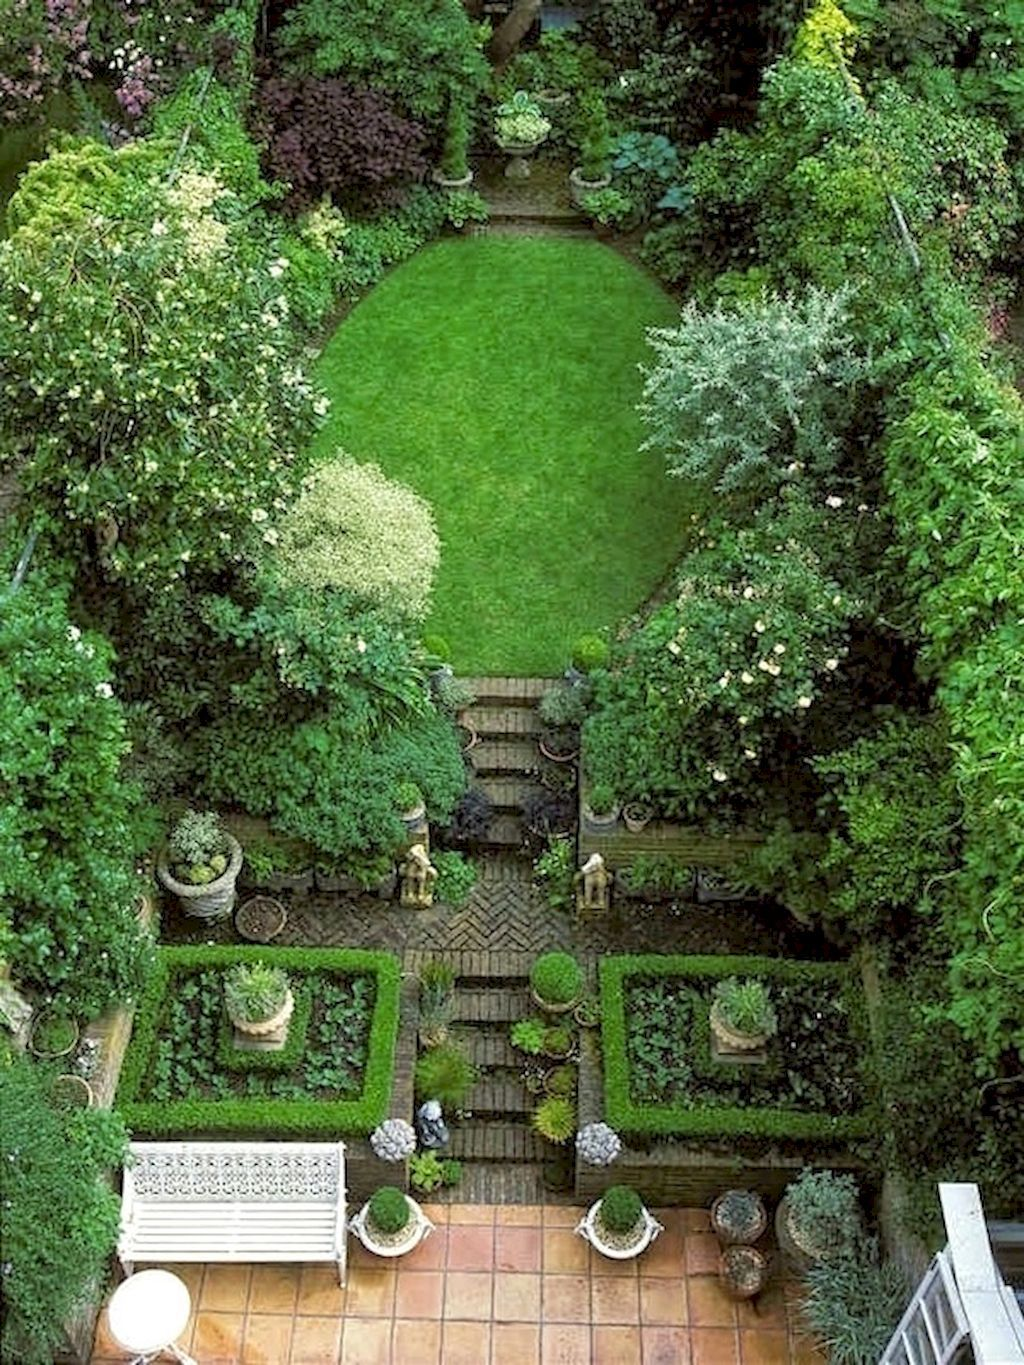 80 Small Backyard Landscaping Ideas on a Budget | Pinterest ...